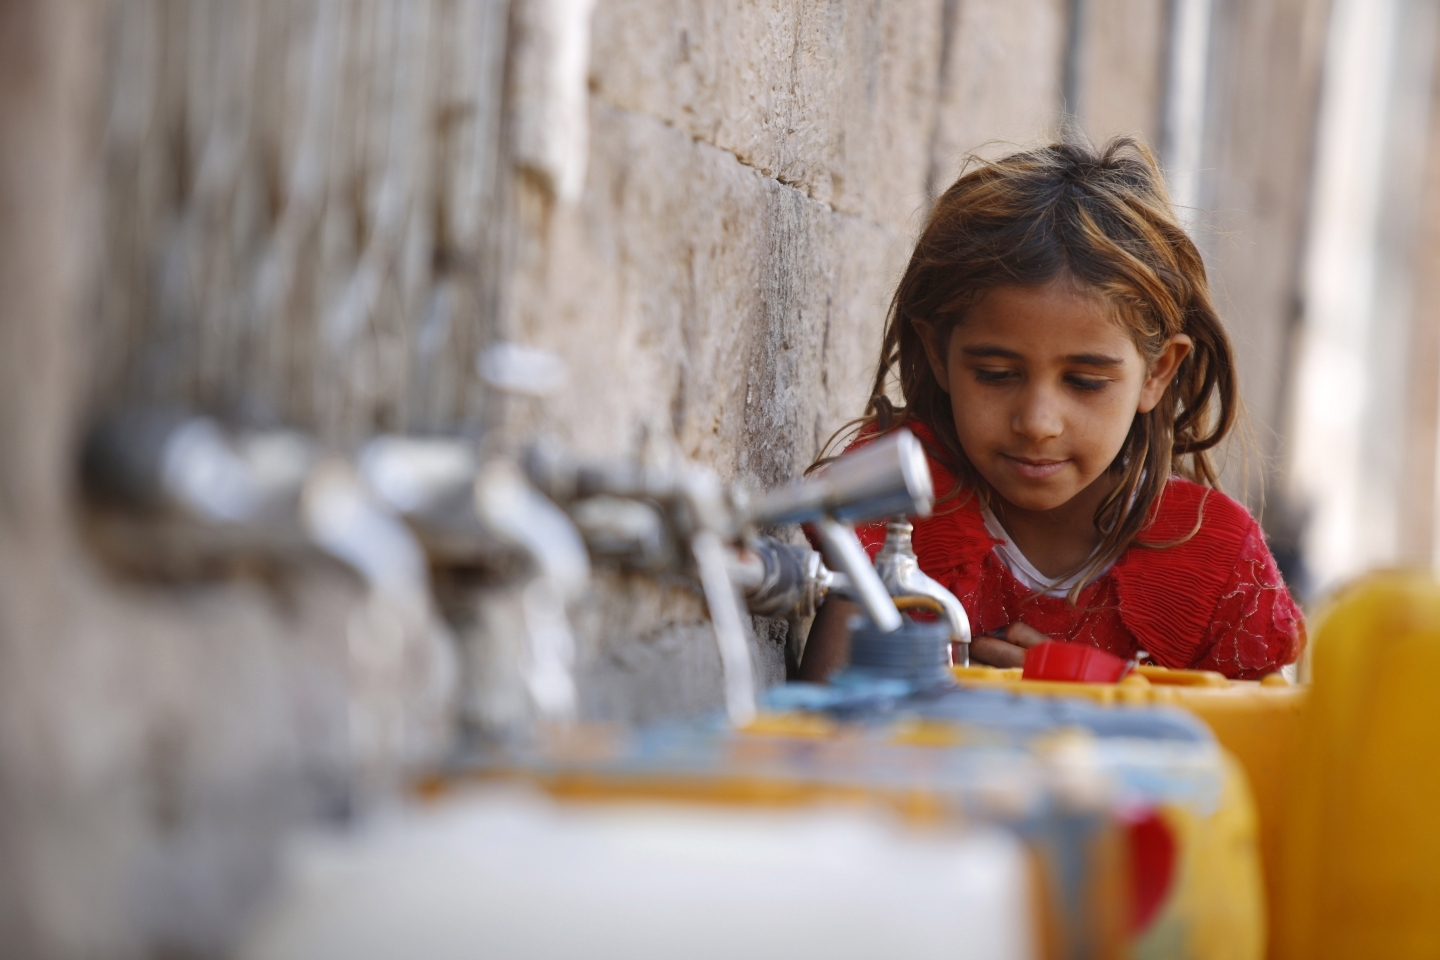 A girl fills a container with water from a public tap in the old city of Sanaa, Yemen (AP Photo/Hani Mohammed)